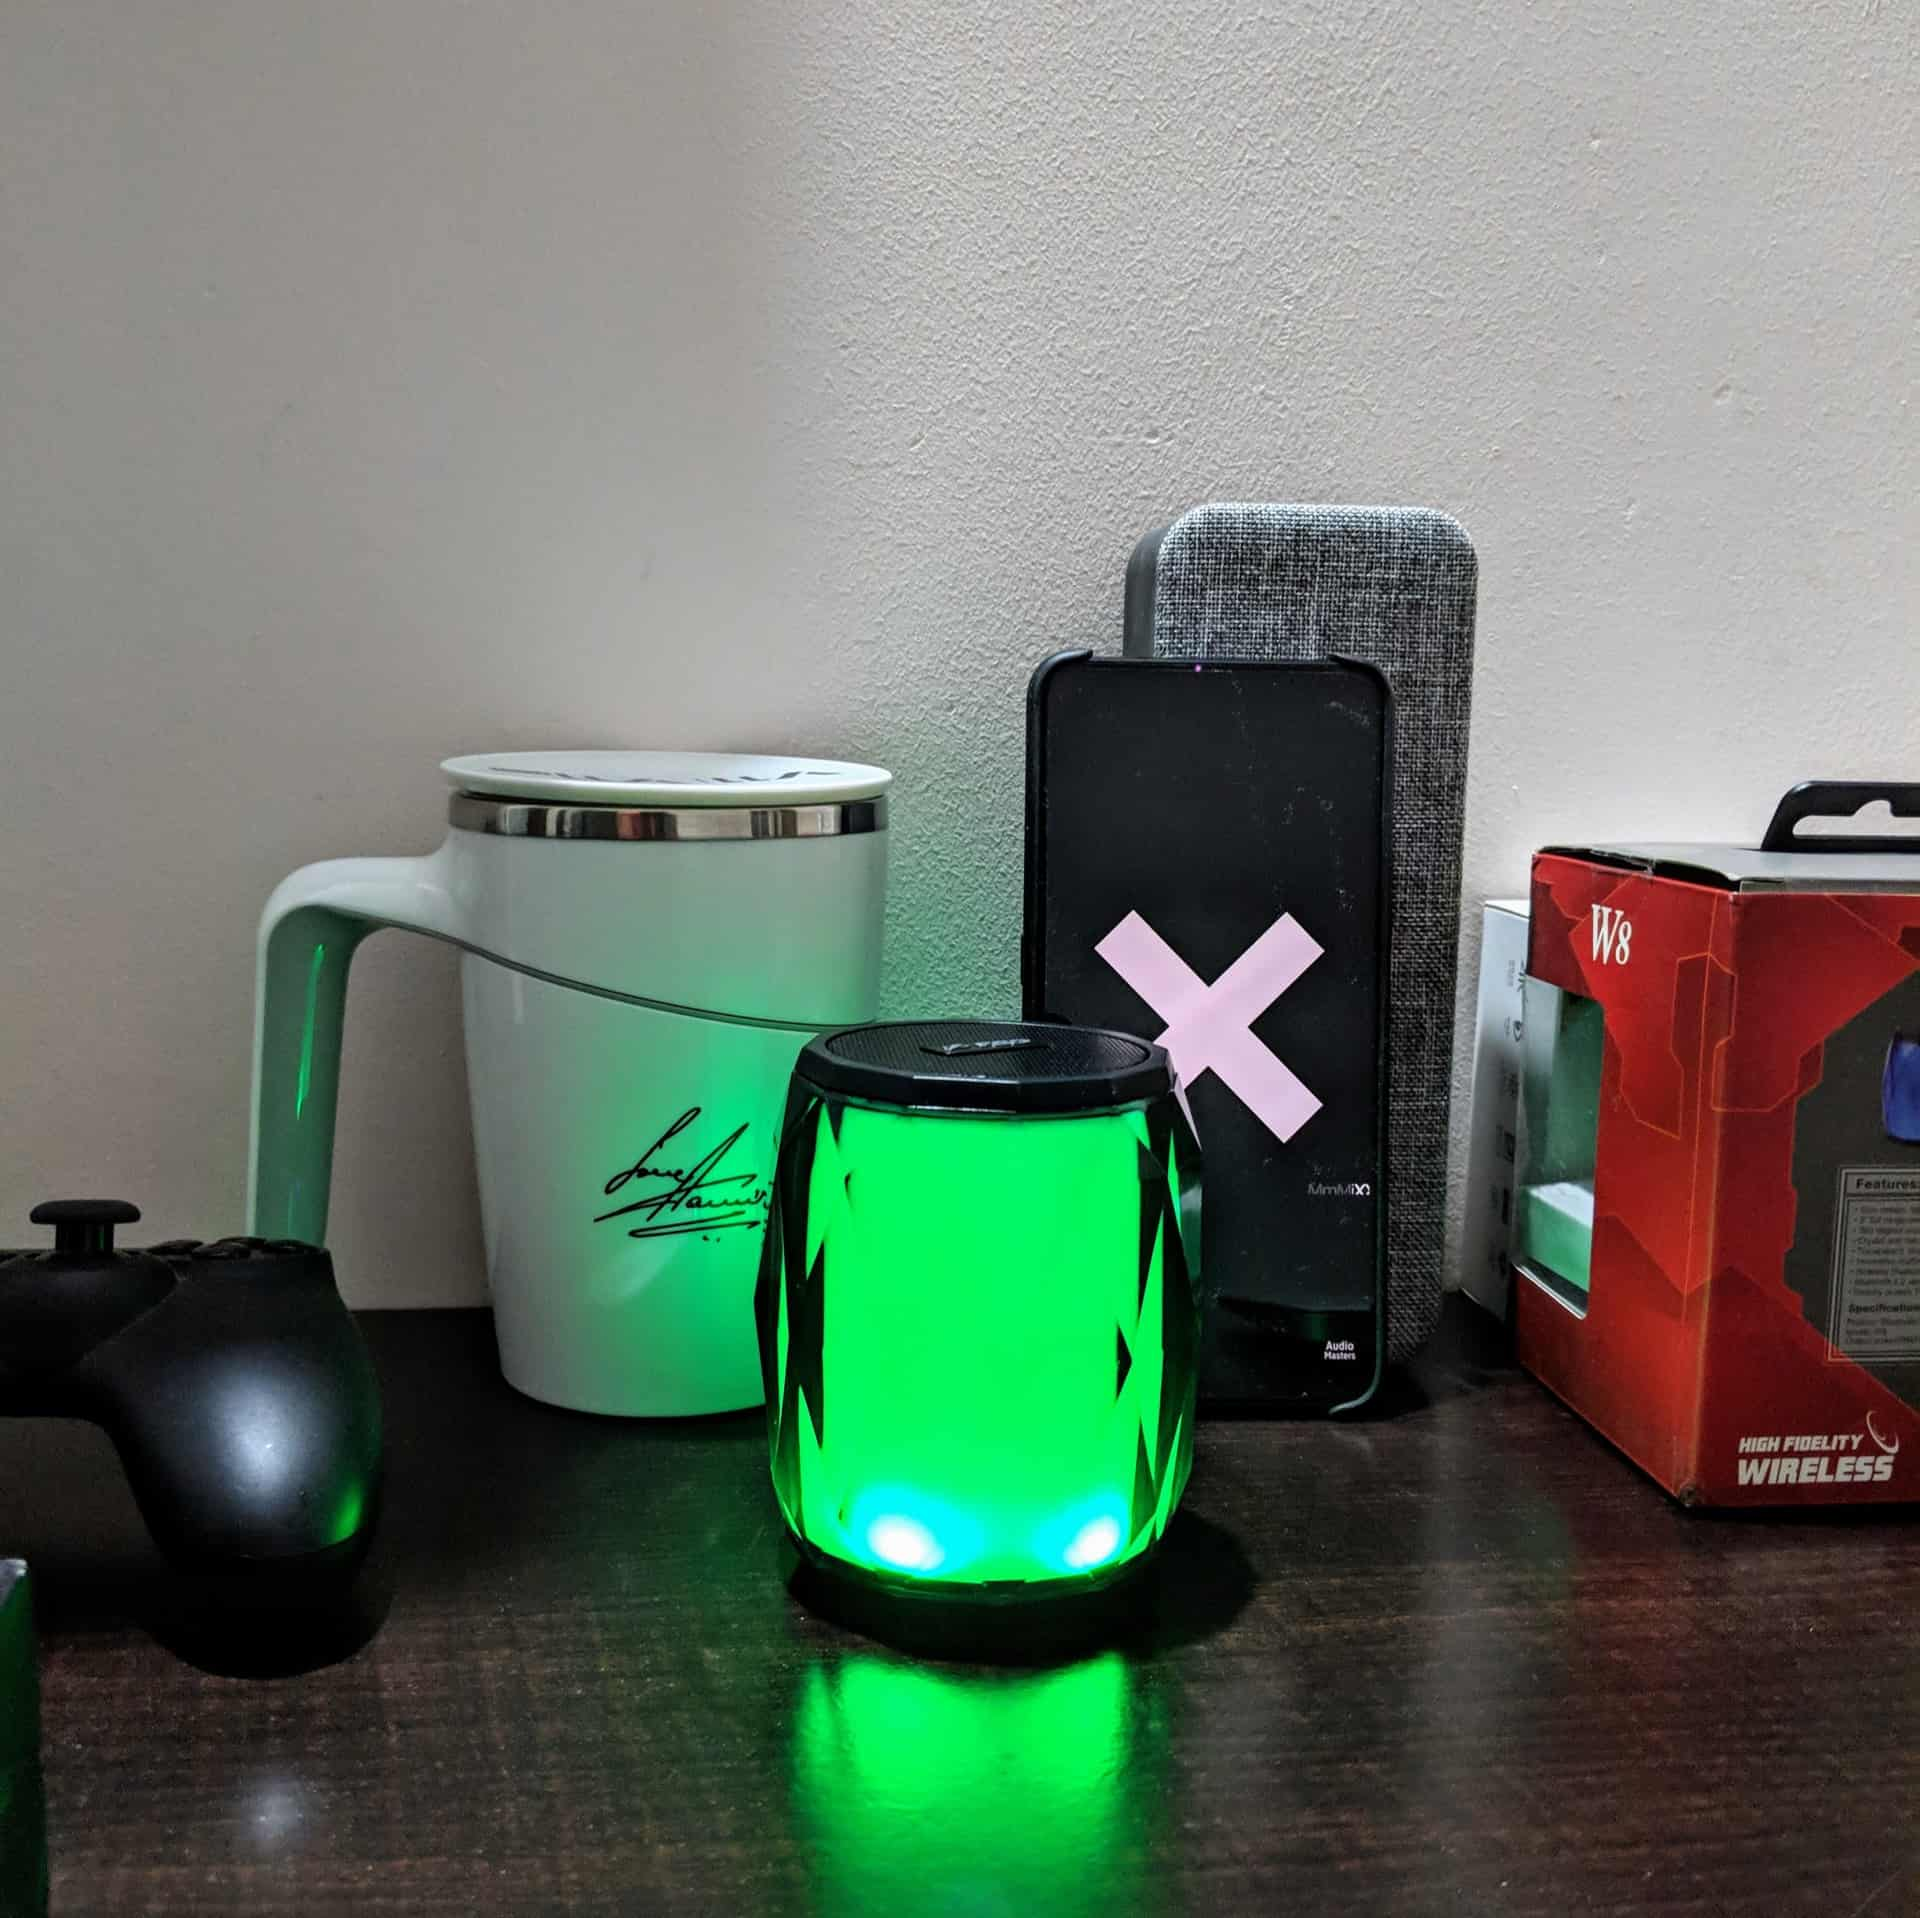 F&D W8 Portable Bluetooth Speaker Review - 8